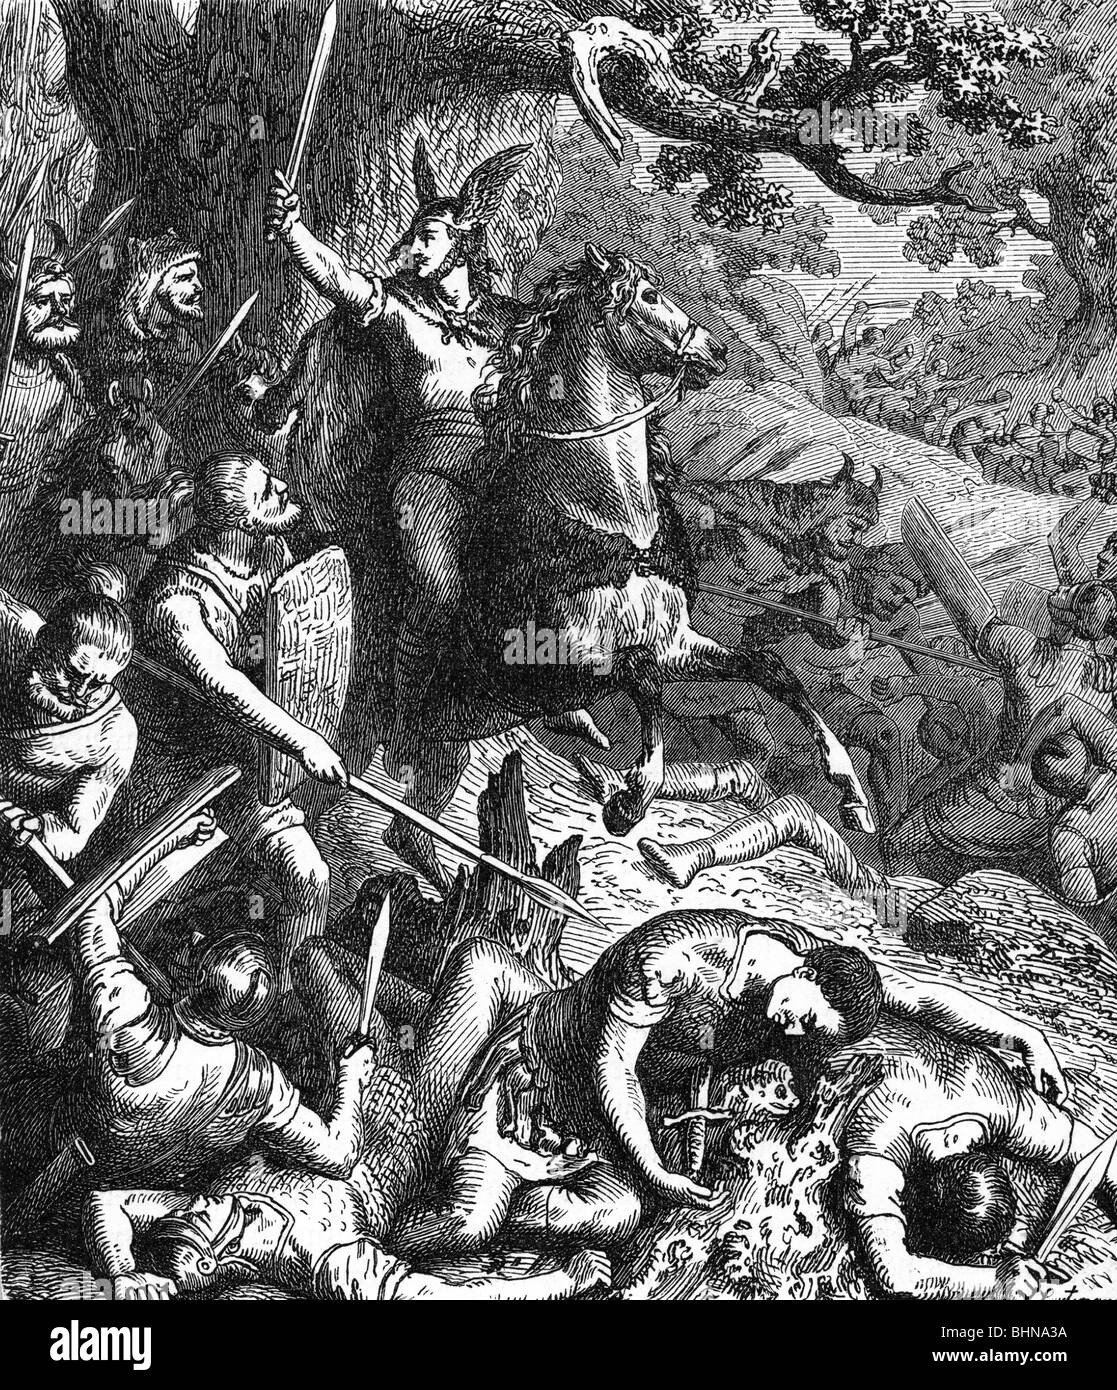 events, Cimbrian War 113 - 101 BC, Cimbri and Teutons in combat with the Romans, wood engraving after drawing by - Stock Image